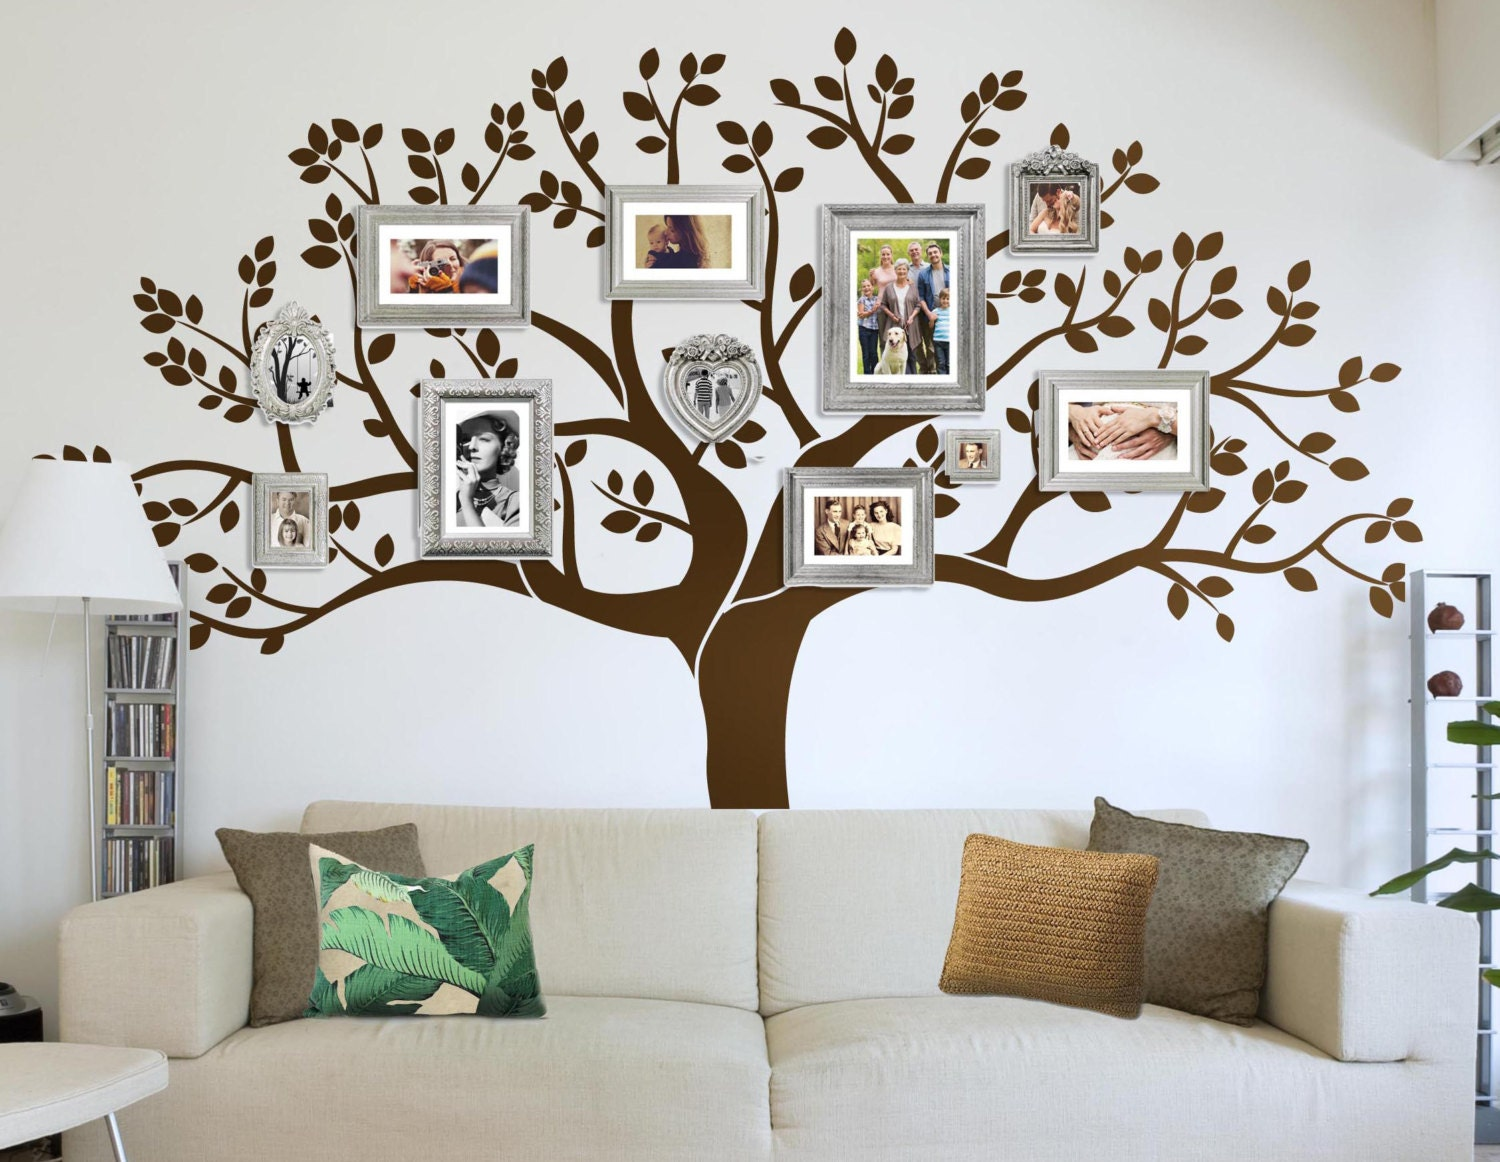 ... Family Tree Decal - Wall decals - Wall decor - Wall art - Large. 🔎zoom